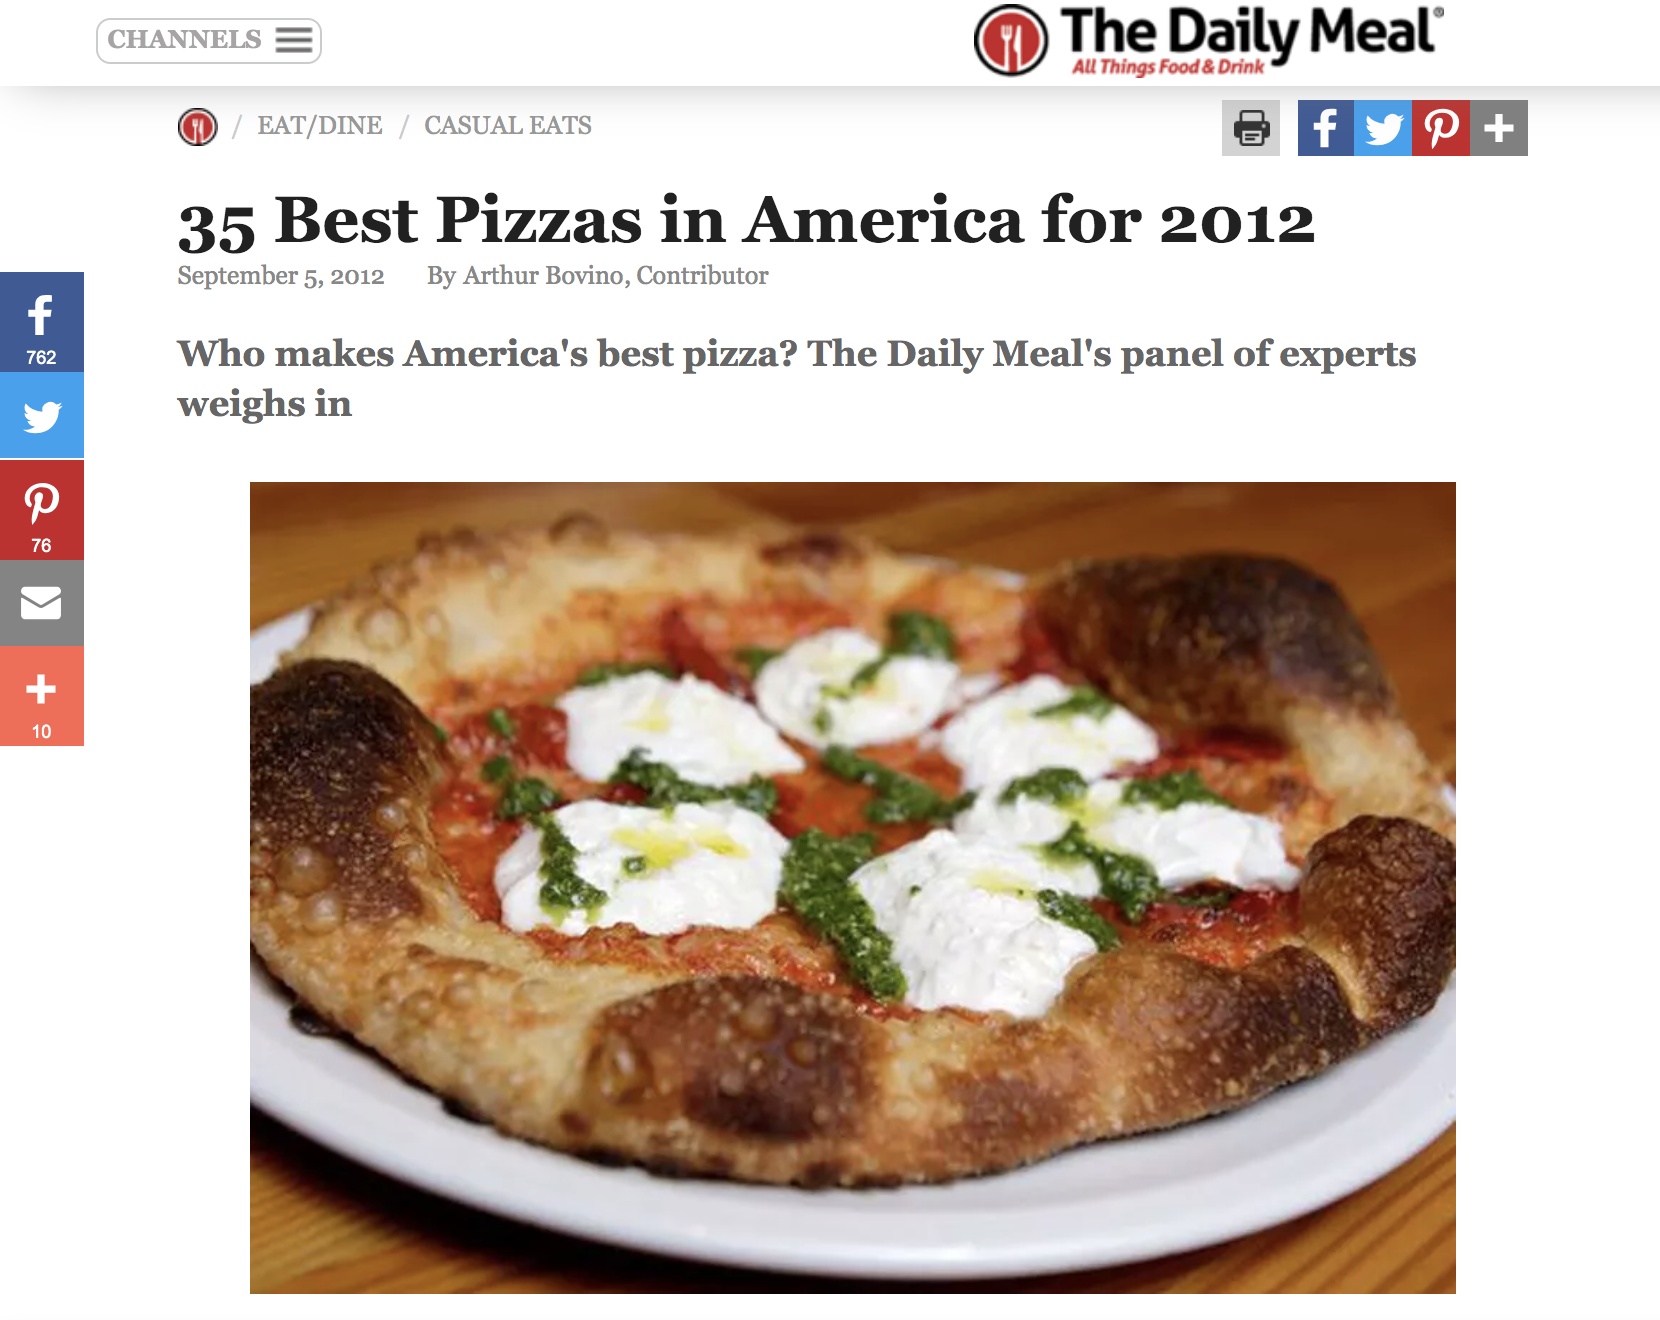 Who makes America's best pizza? The Daily Meal's panel of experts weighs in.